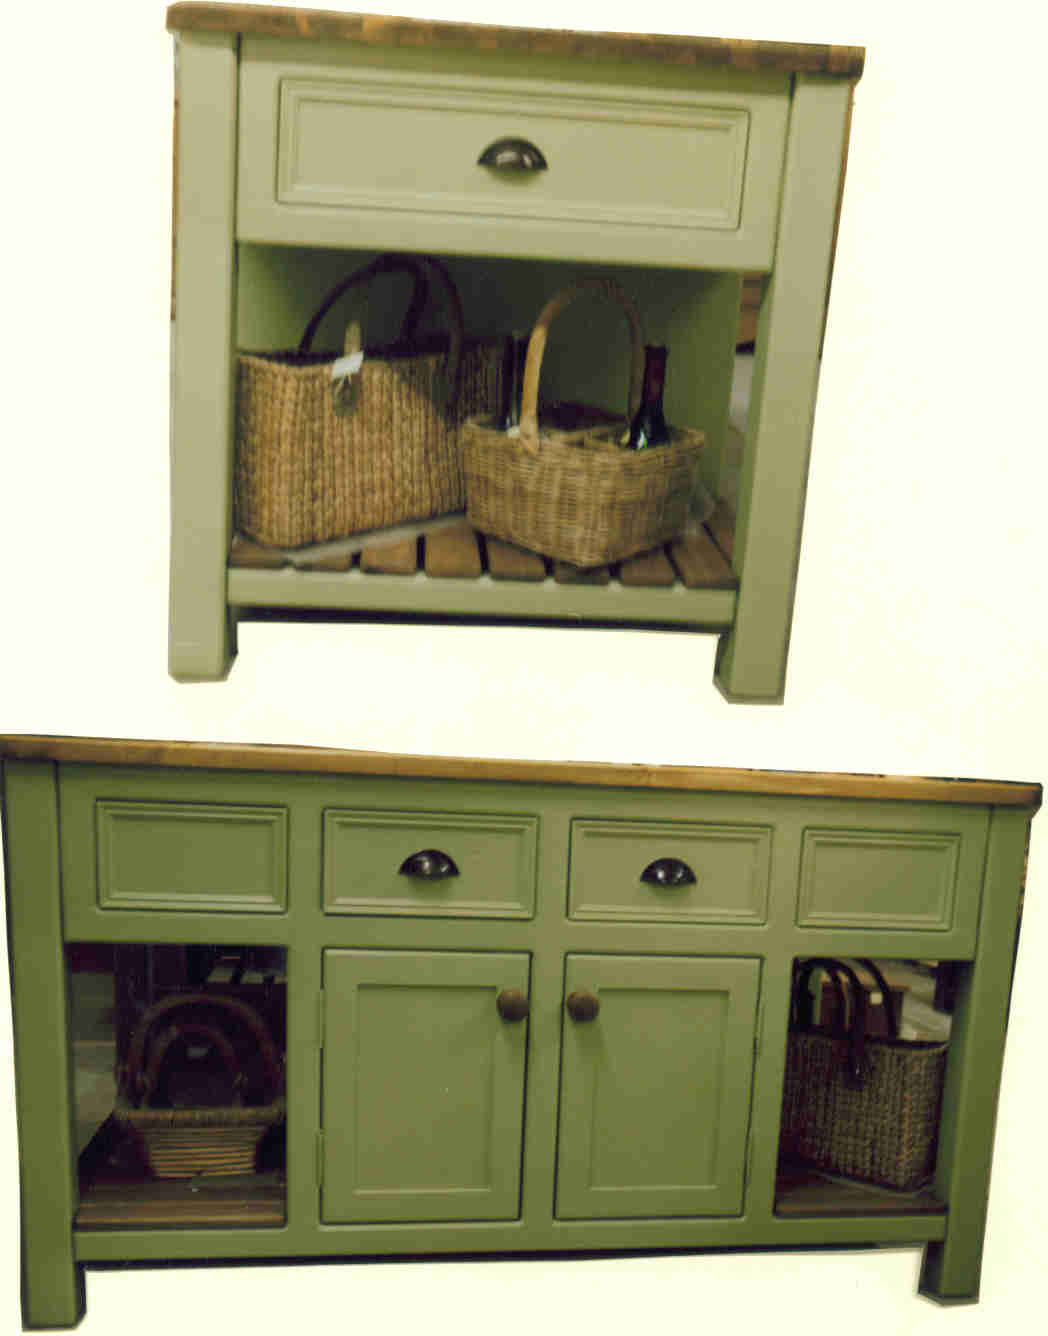 island kitchen units kitchen island unit the olive branch the olive branch 1978